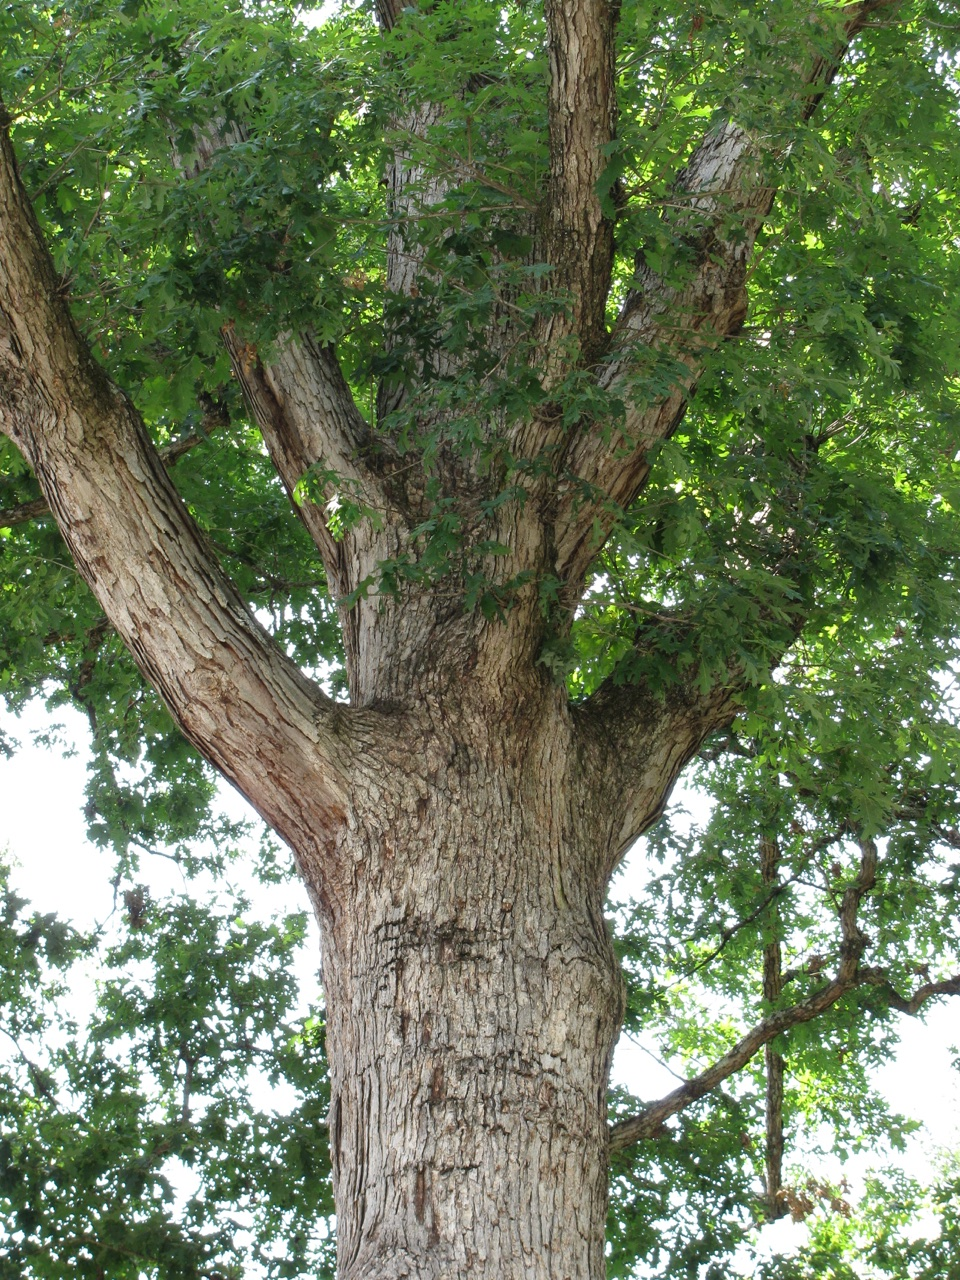 The Scientific Name is Quercus alba. You will likely hear them called White Oak. This picture shows the Distinctive pale gray bark with somewhat loose ends to the narrow vertical plates. of Quercus alba